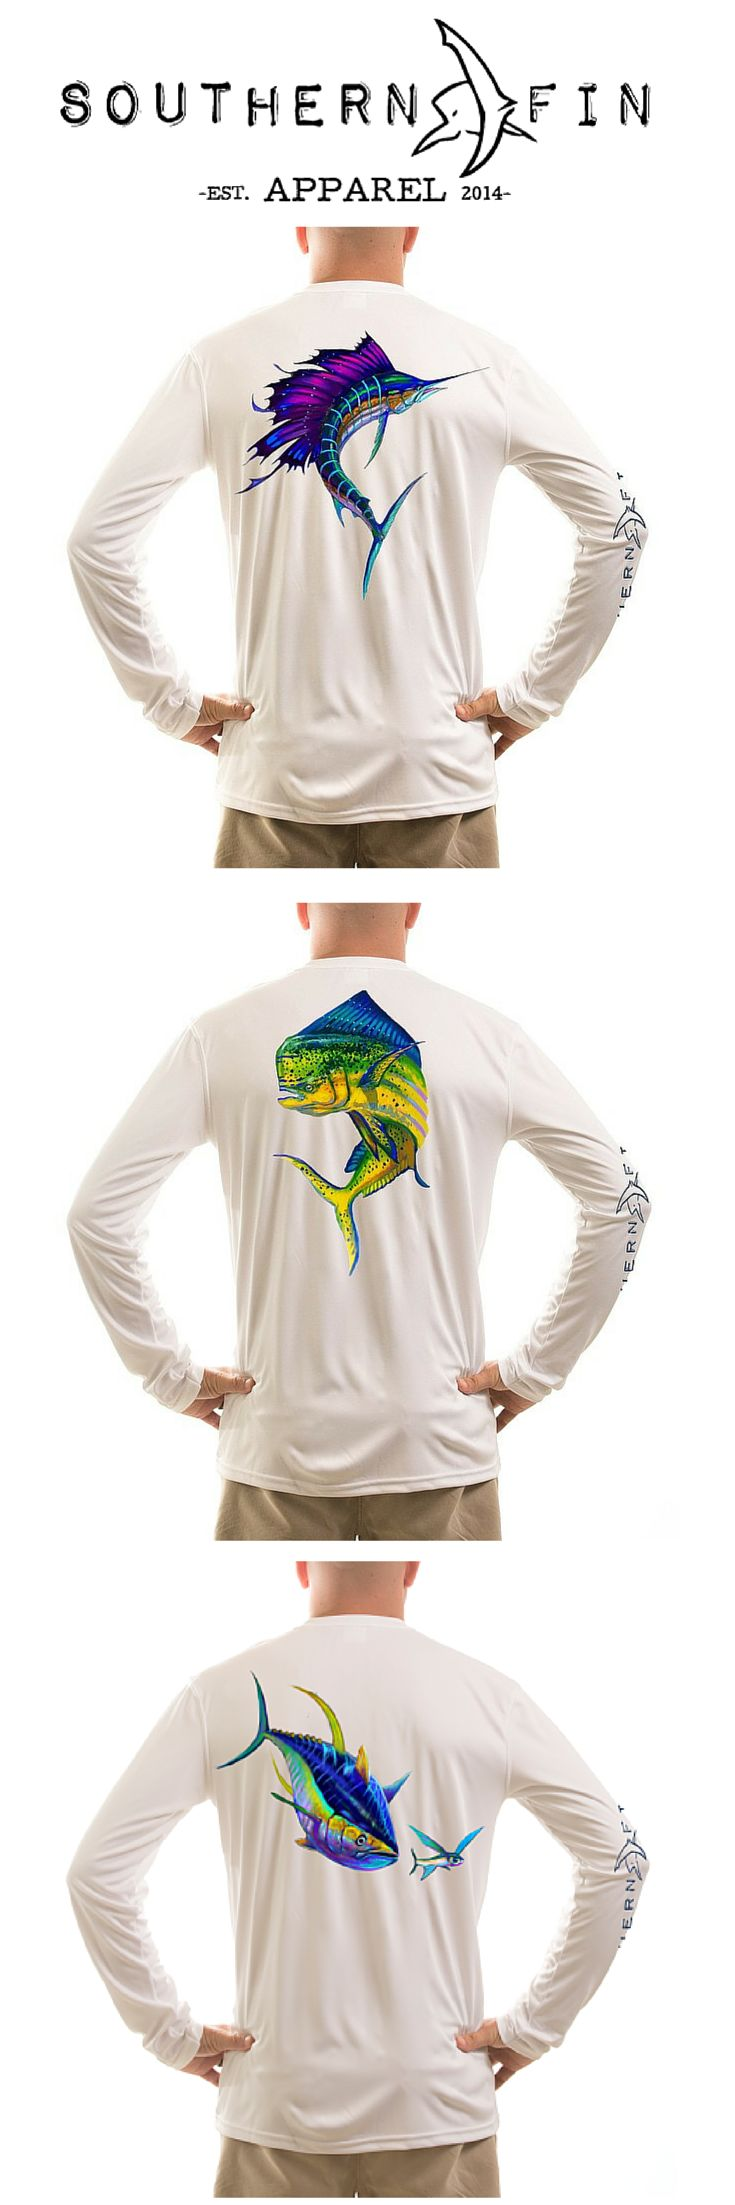 Need a #FATHERSDAY Gift? Look no further!  100% Microfiber Performance Long Sleeve Fishing Shirts. UPF 50+ and Moisture Control Technology. High quality fishing apparel for serious anglers.